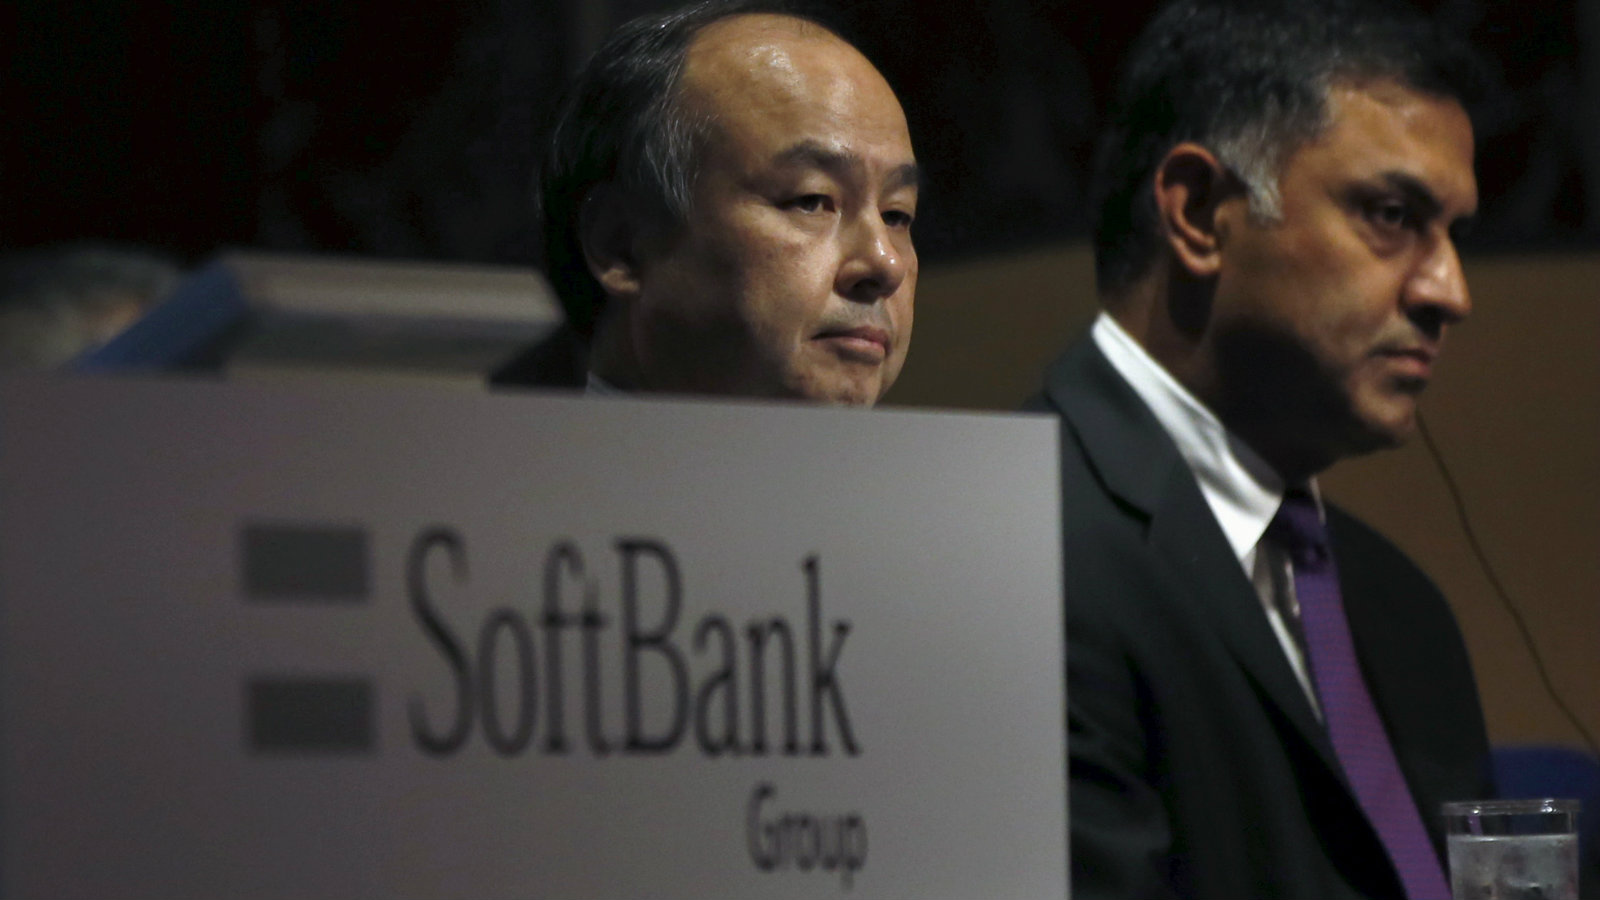 SoftBank Group Corp. Chairman and CEO Masayoshi Son (L) and President and COO Nikesh Arora attend a news conference in Tokyo, Japan, November 4, 2015. SoftBank Group's second-quarter operating profit rose 39 percent on cost cuts and some improvement at its struggling U.S. unit Sprint Corp.